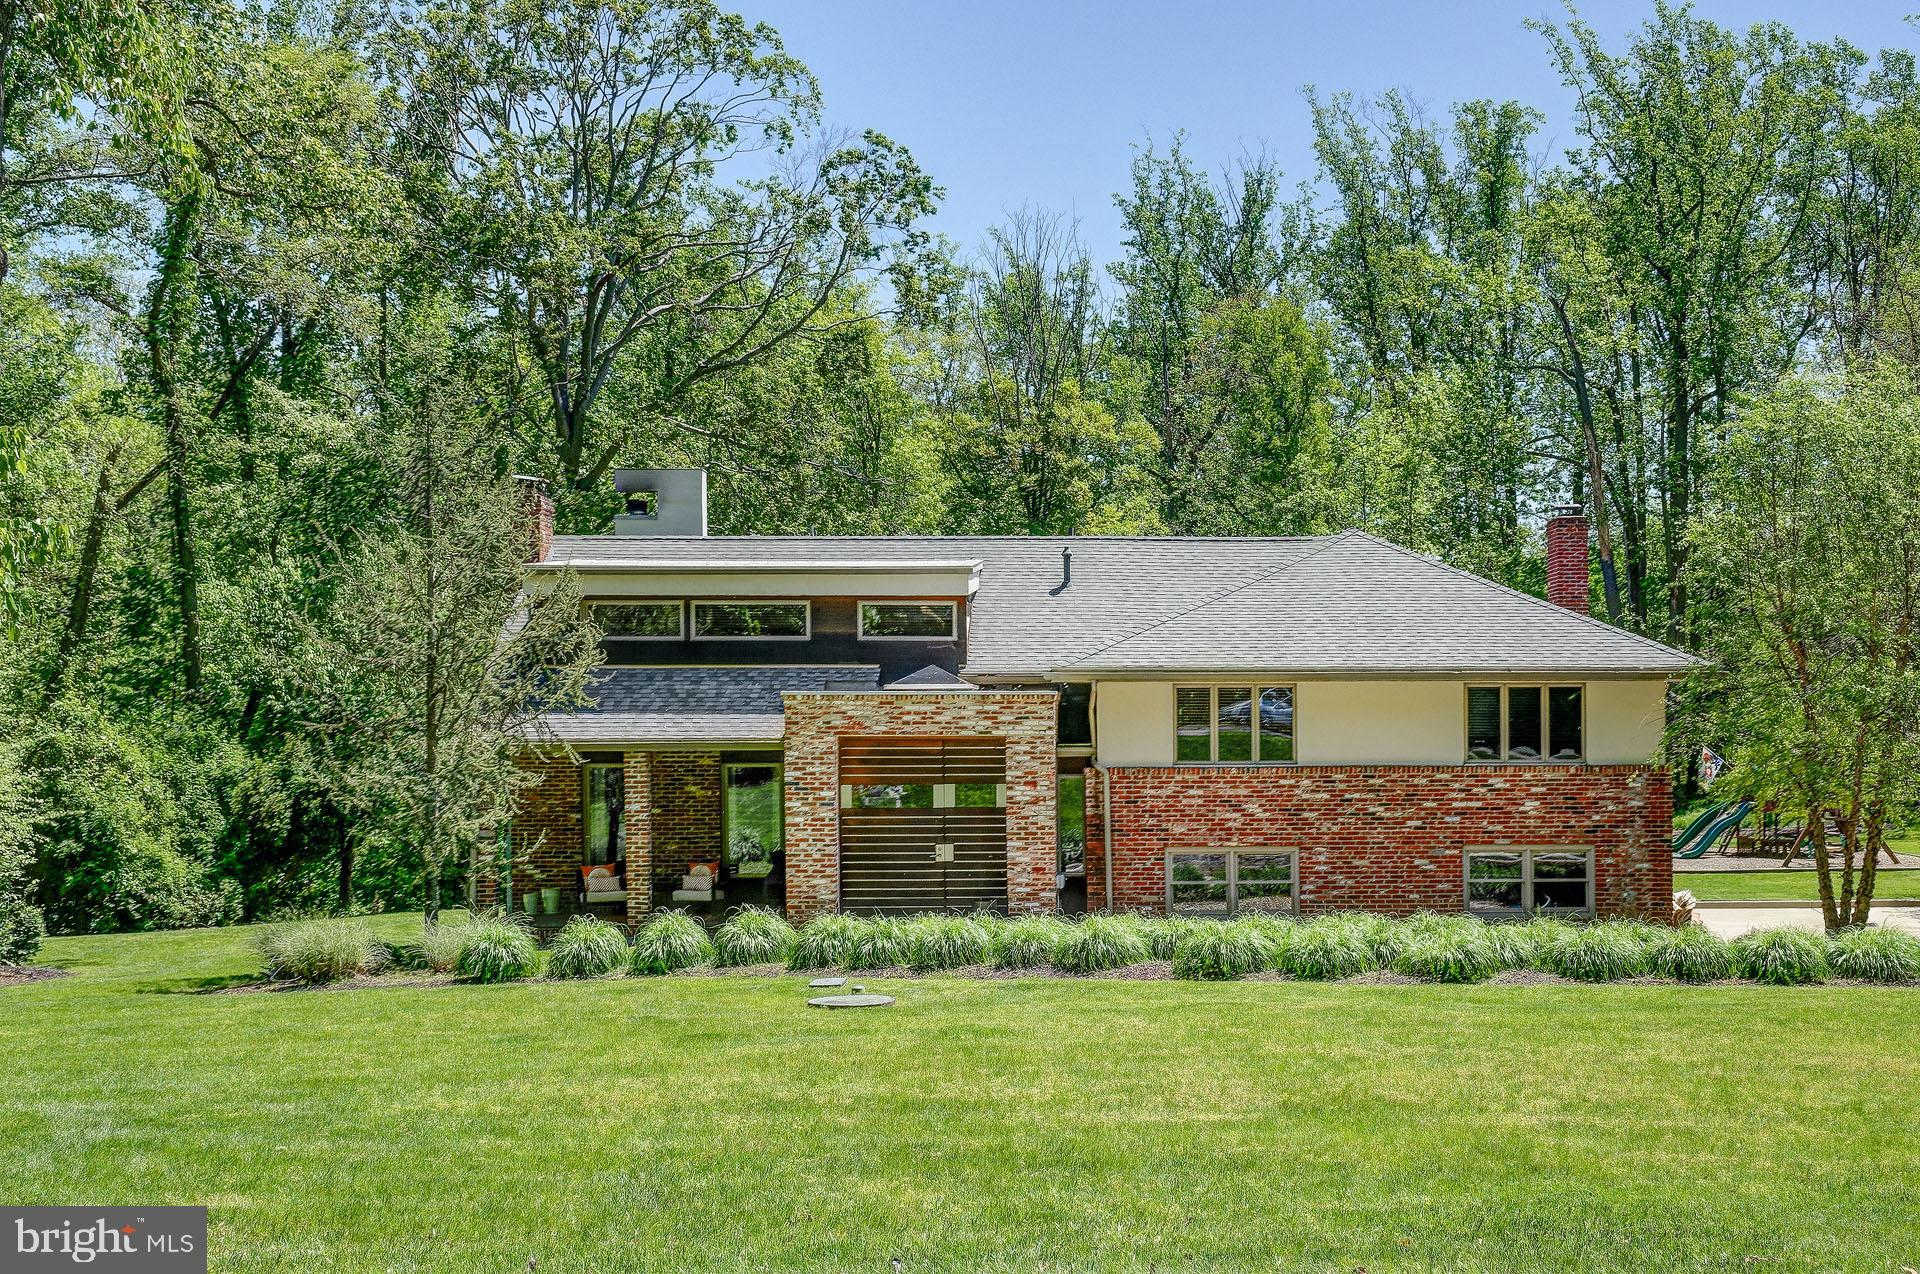 1127 Winding Dr, Cherry Hill, NJ 08003 now has a new price of $895,000!